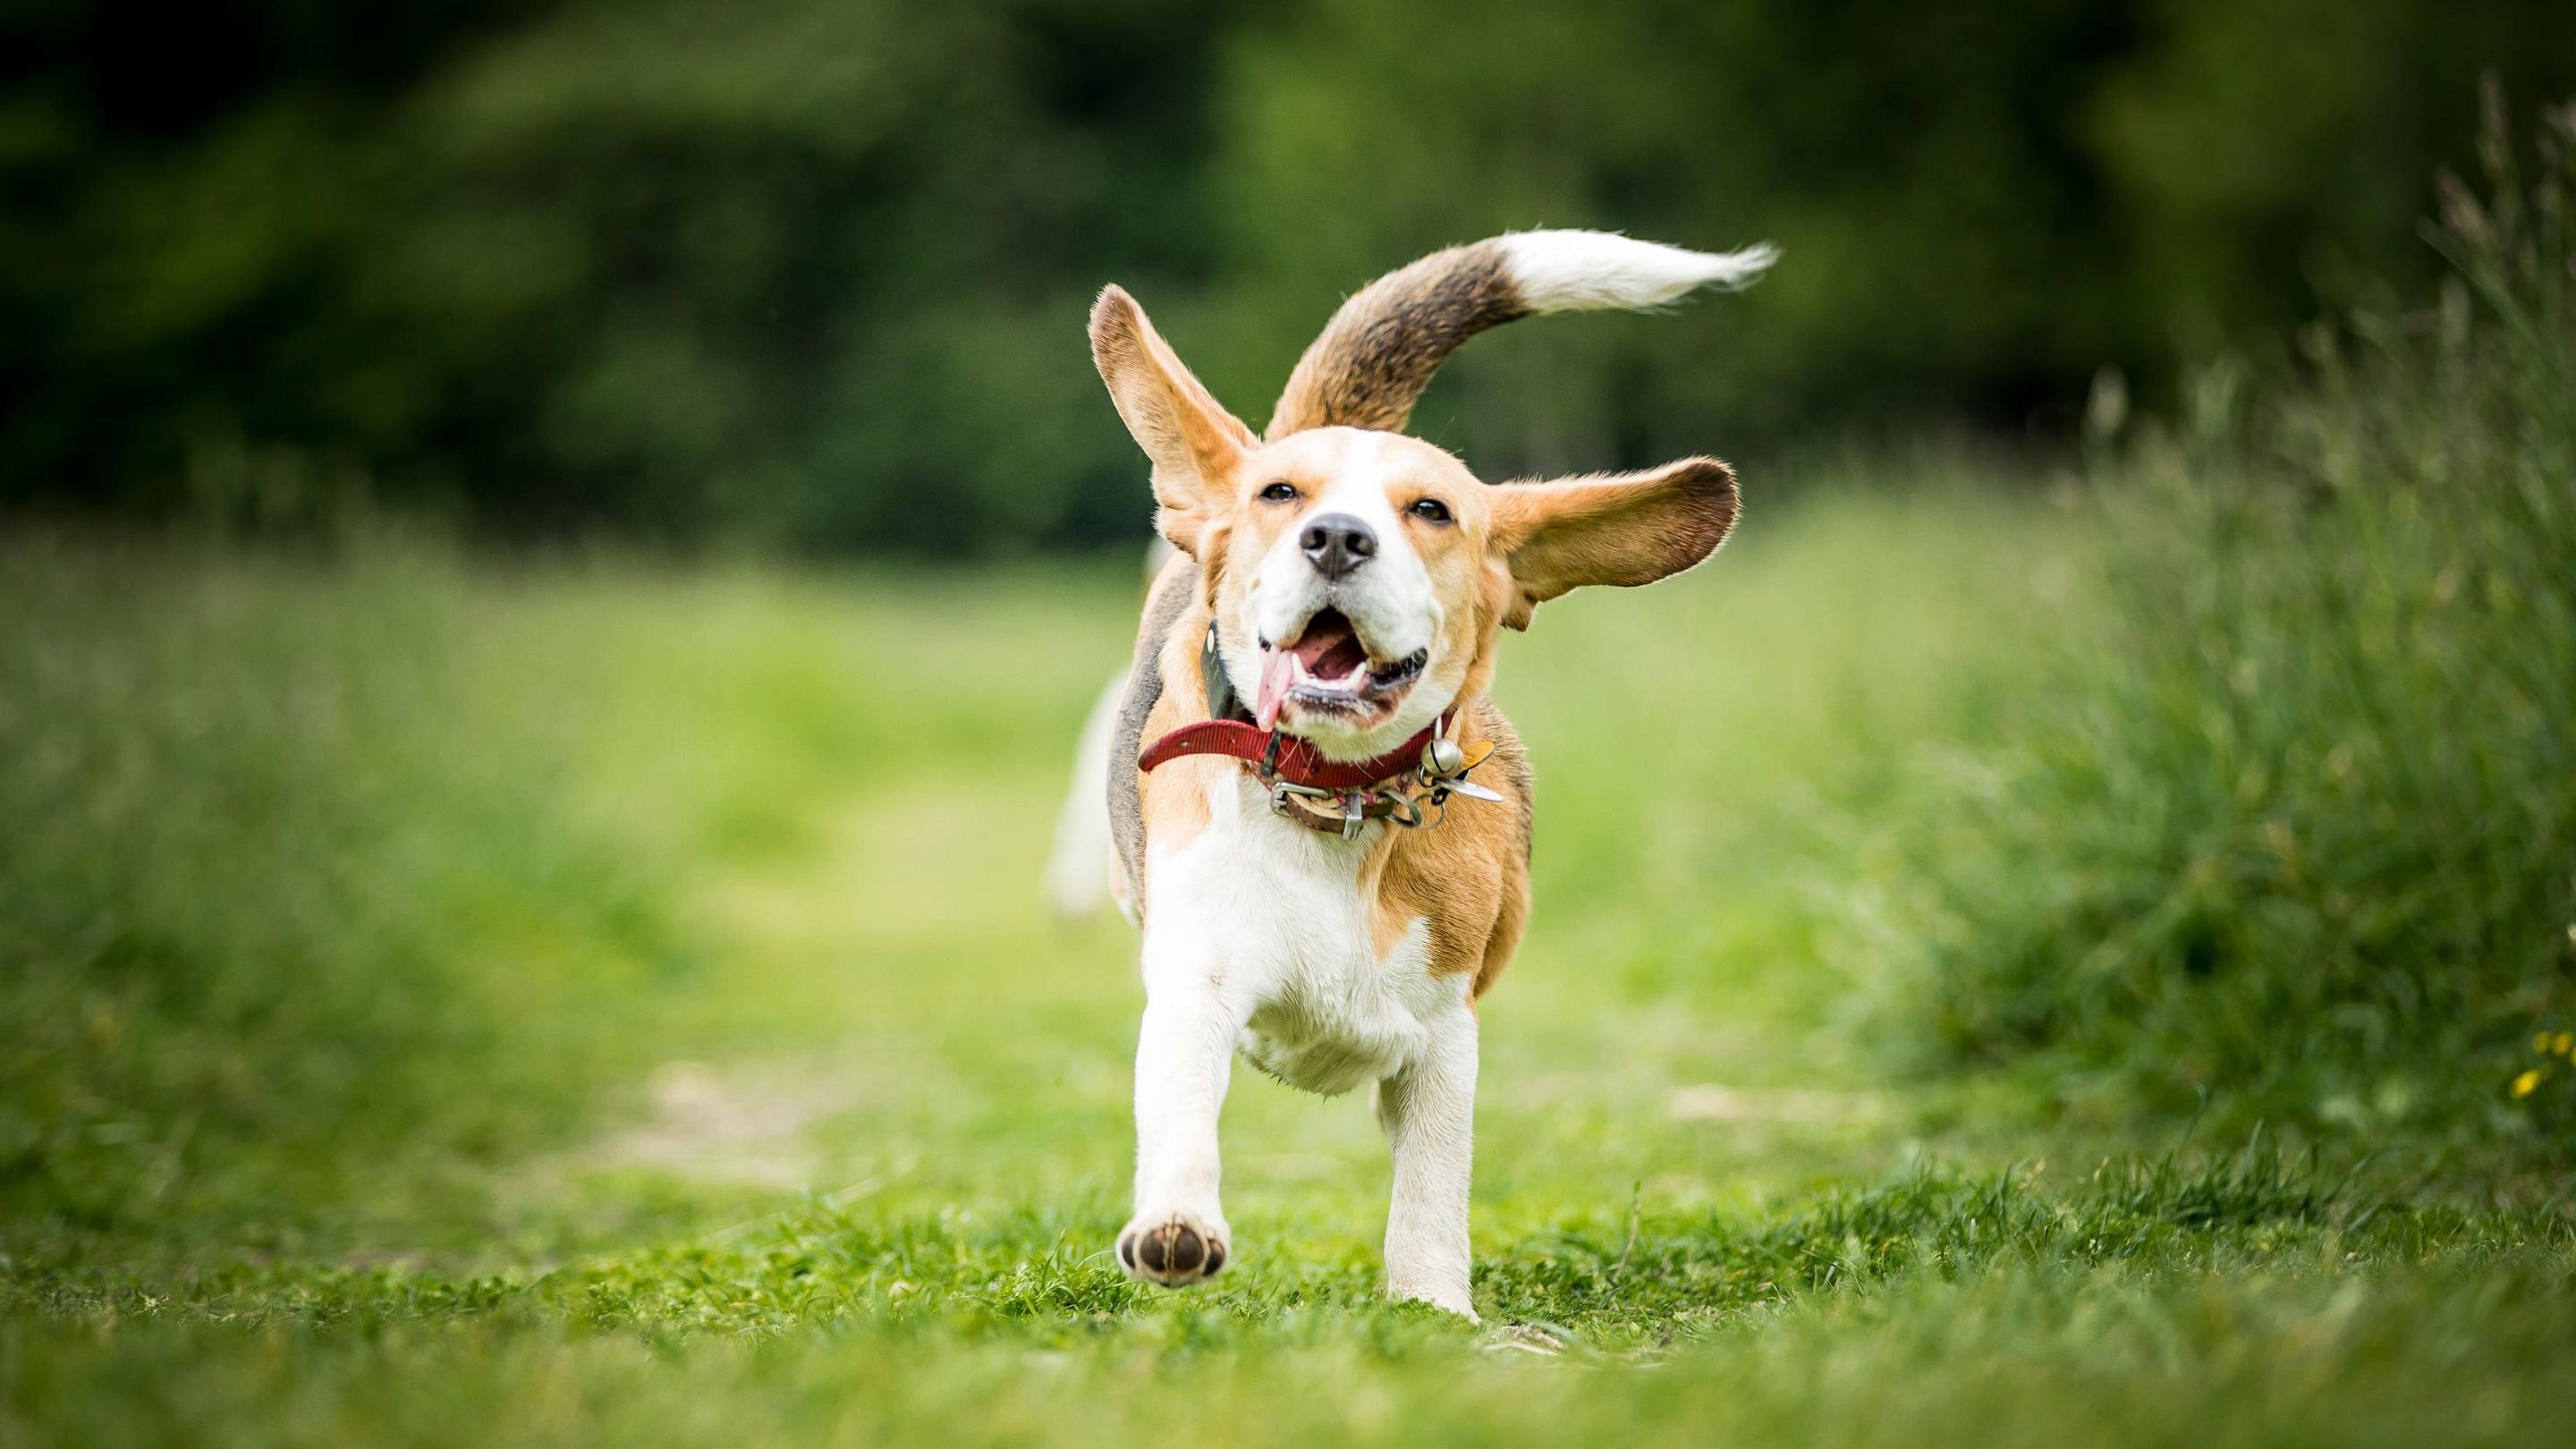 A beagle runs happily through a green field